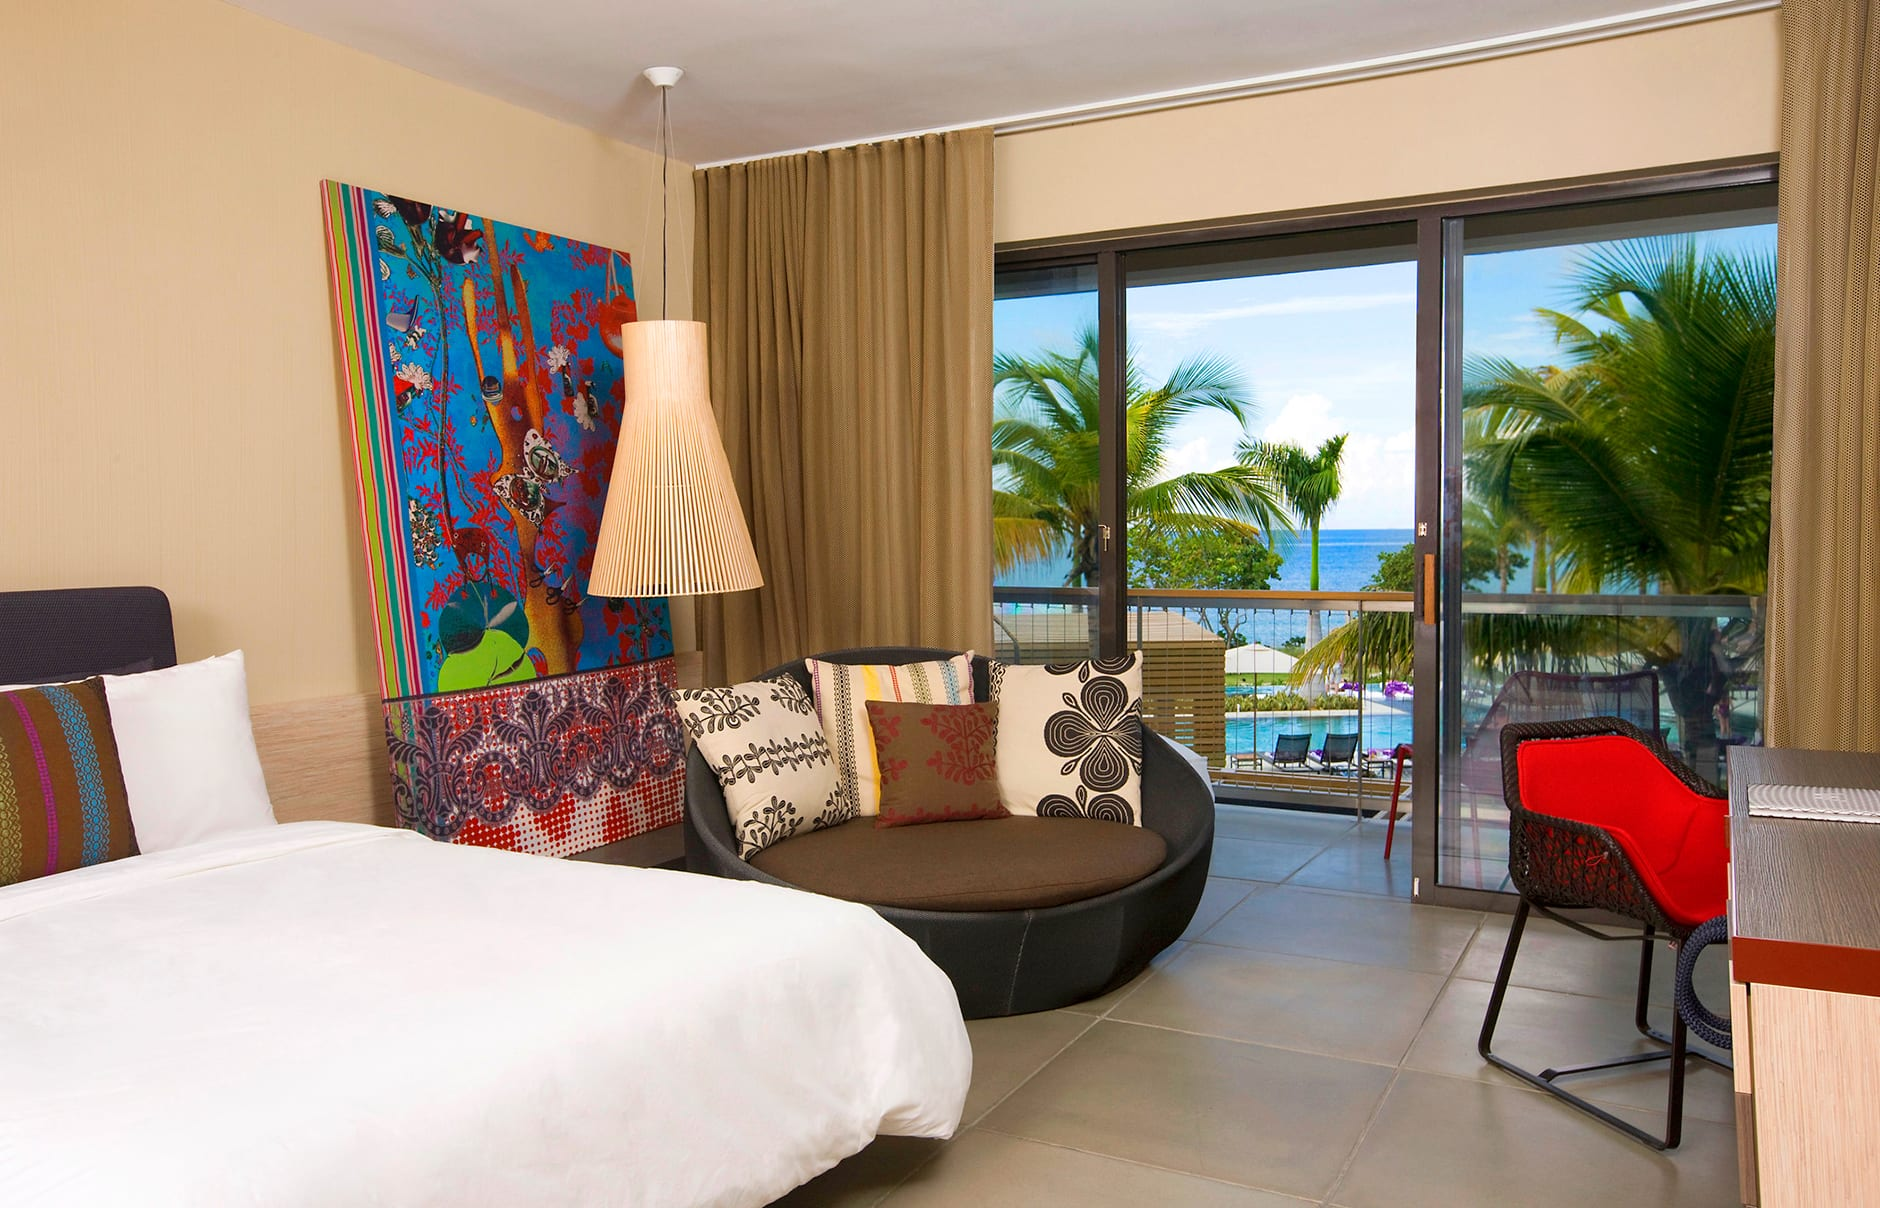 Spectacular Room. W Retreat & Spa – Vieques Island, Puerto Rico. © Starwood Hotels & Resorts